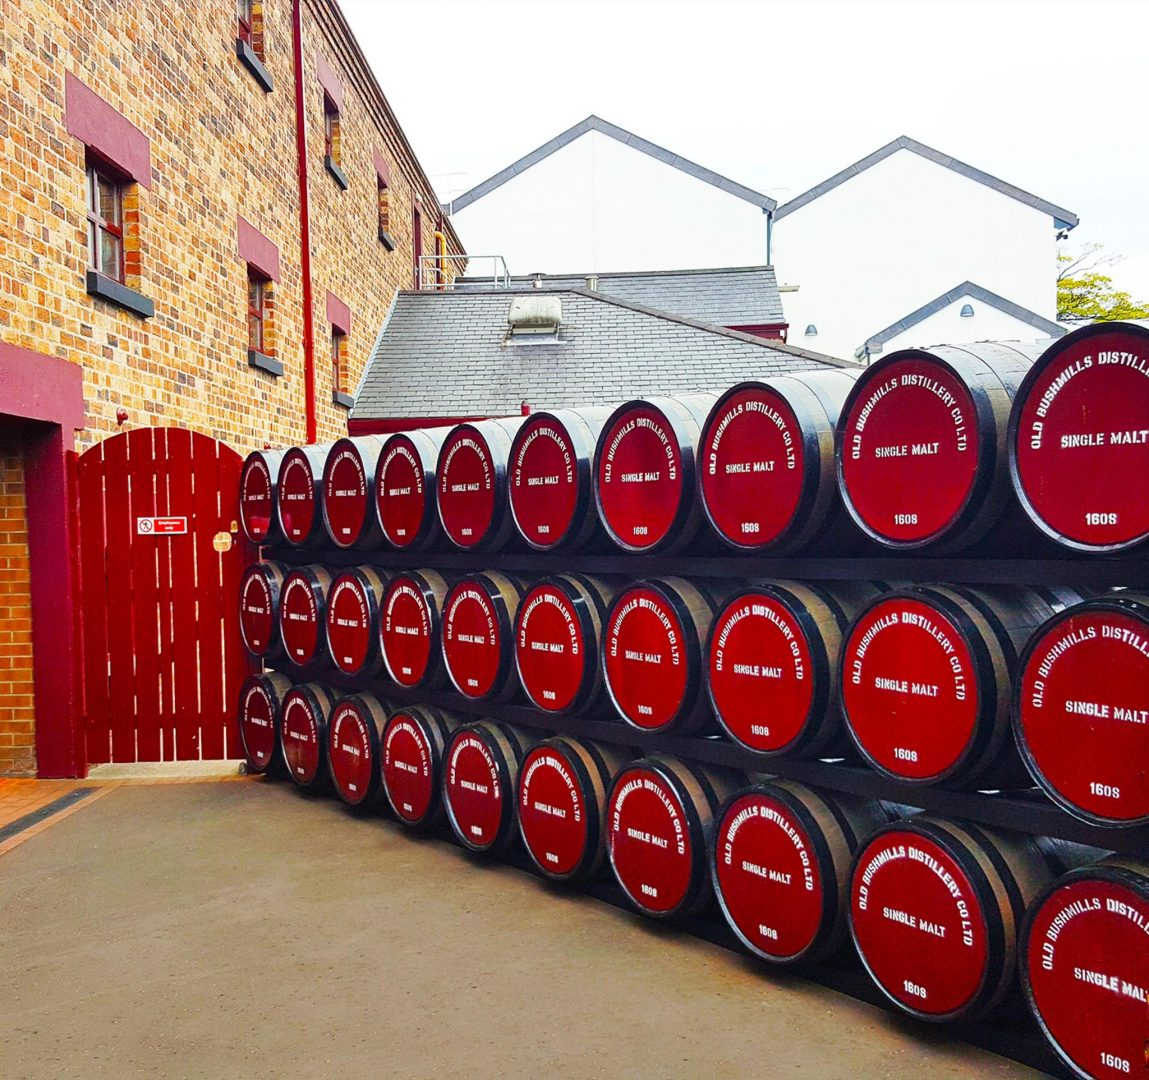 Old Bushmills Whiskey Distillery tour